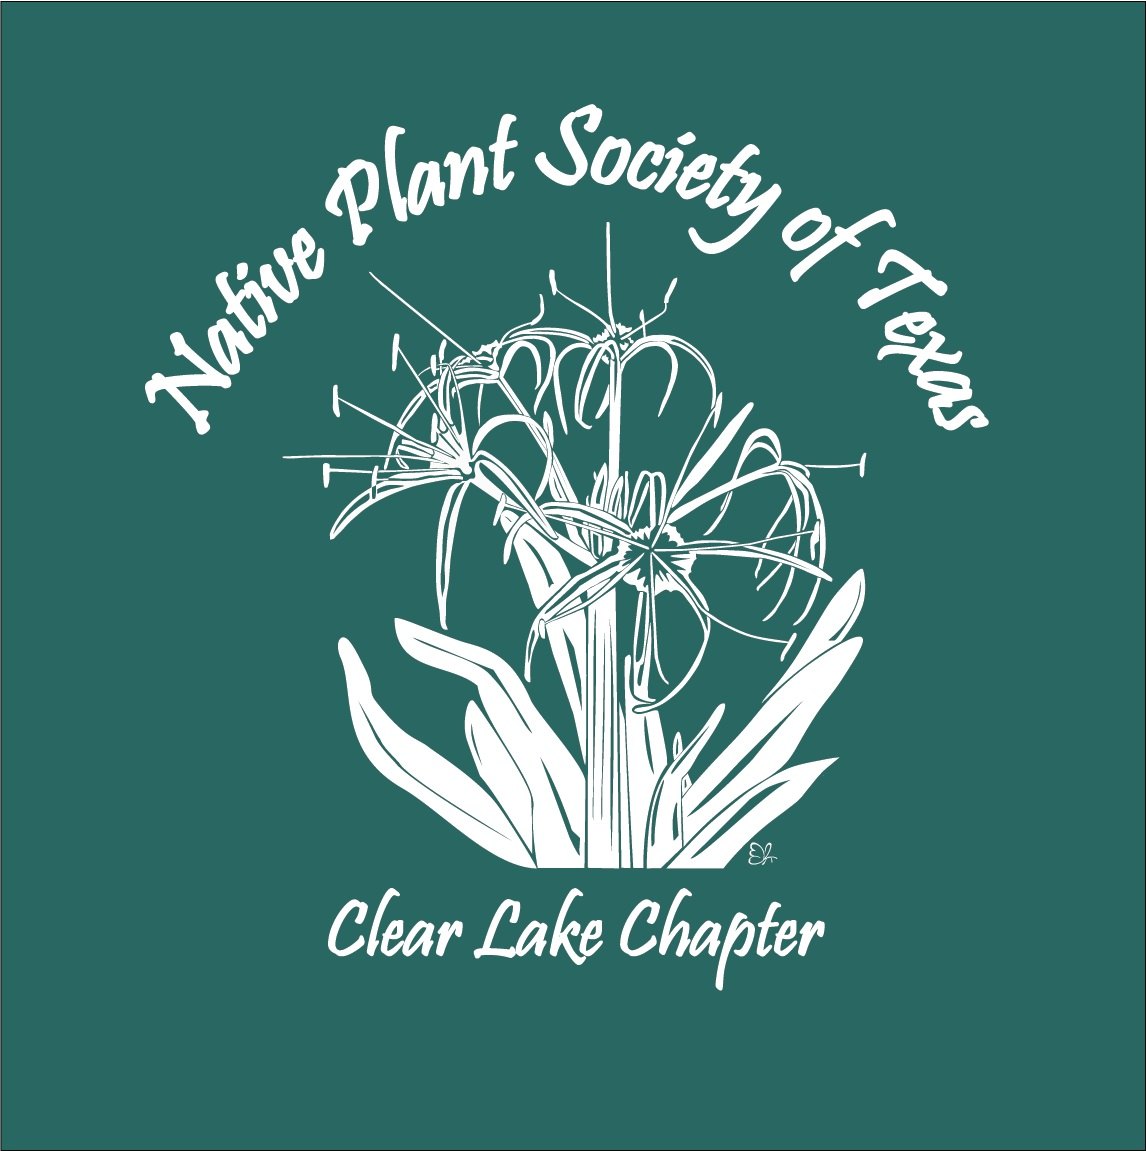 000 Native Plant Society of Texas - Clear Lake Chapter - RPFP BOLD Teal MAH.png